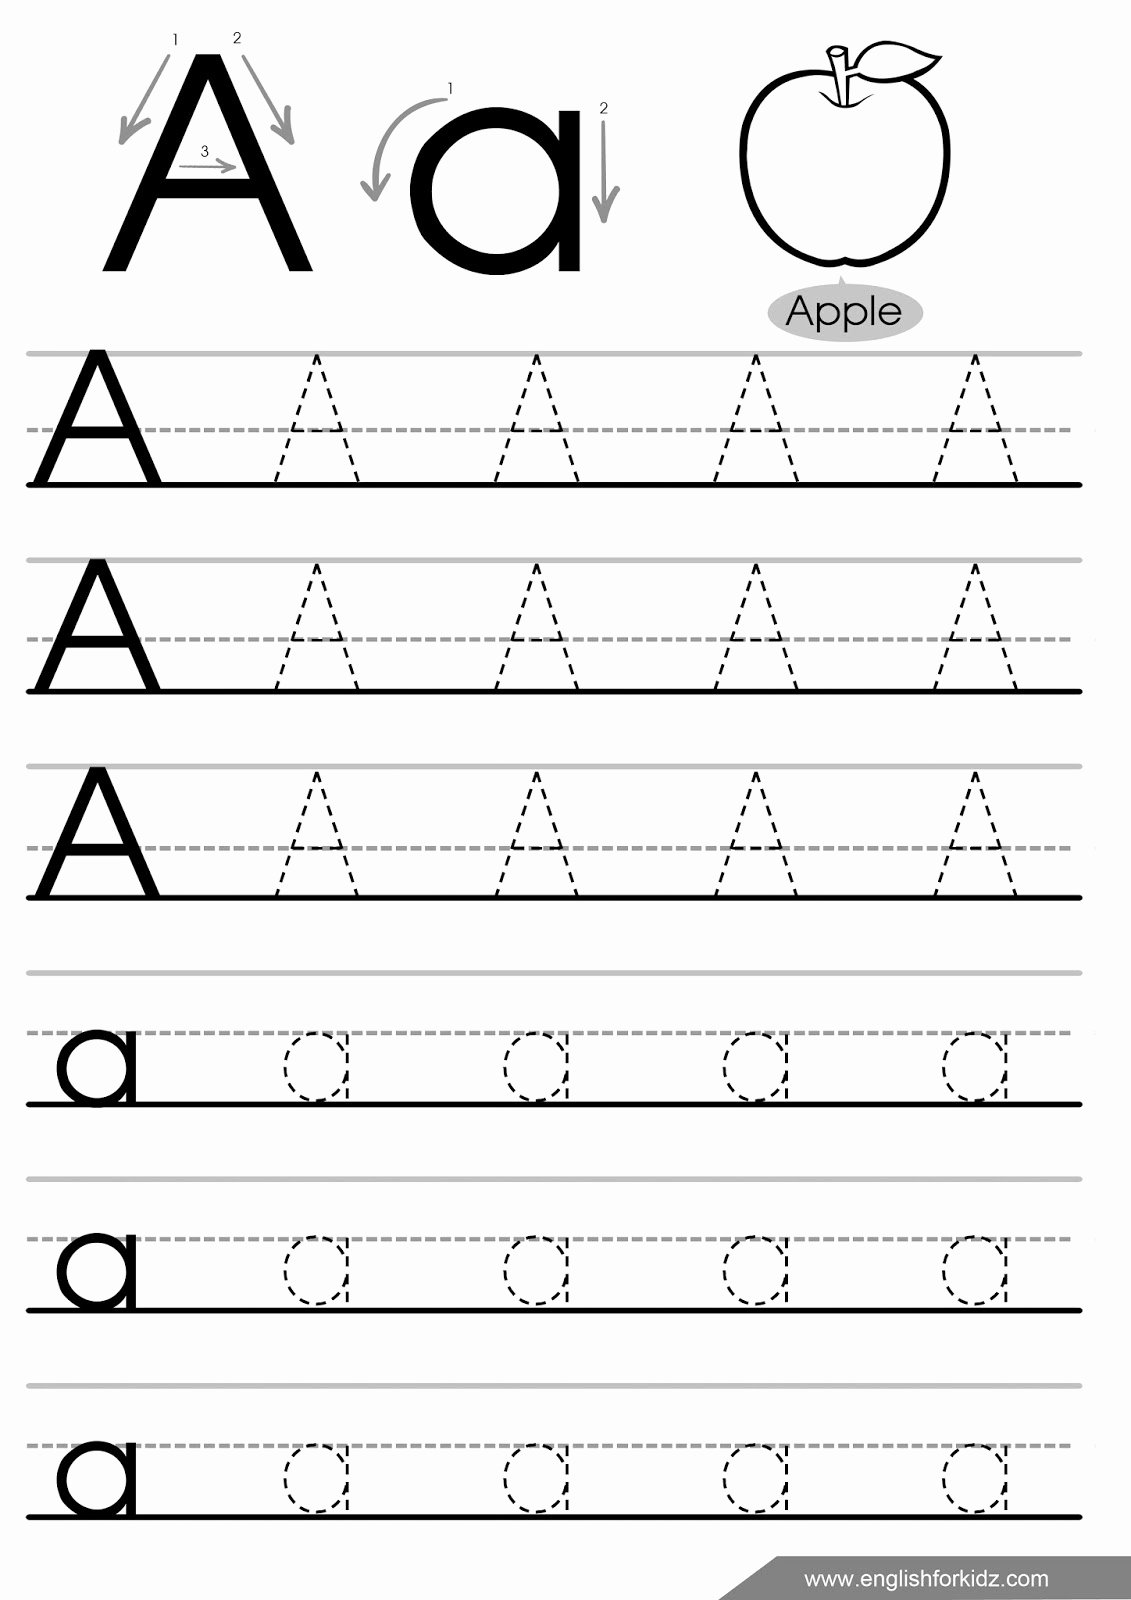 Printable Alphabet Tracing Worksheets for Preschoolers Inspirational Math Worksheet Alphabet Tracing Worksheets for